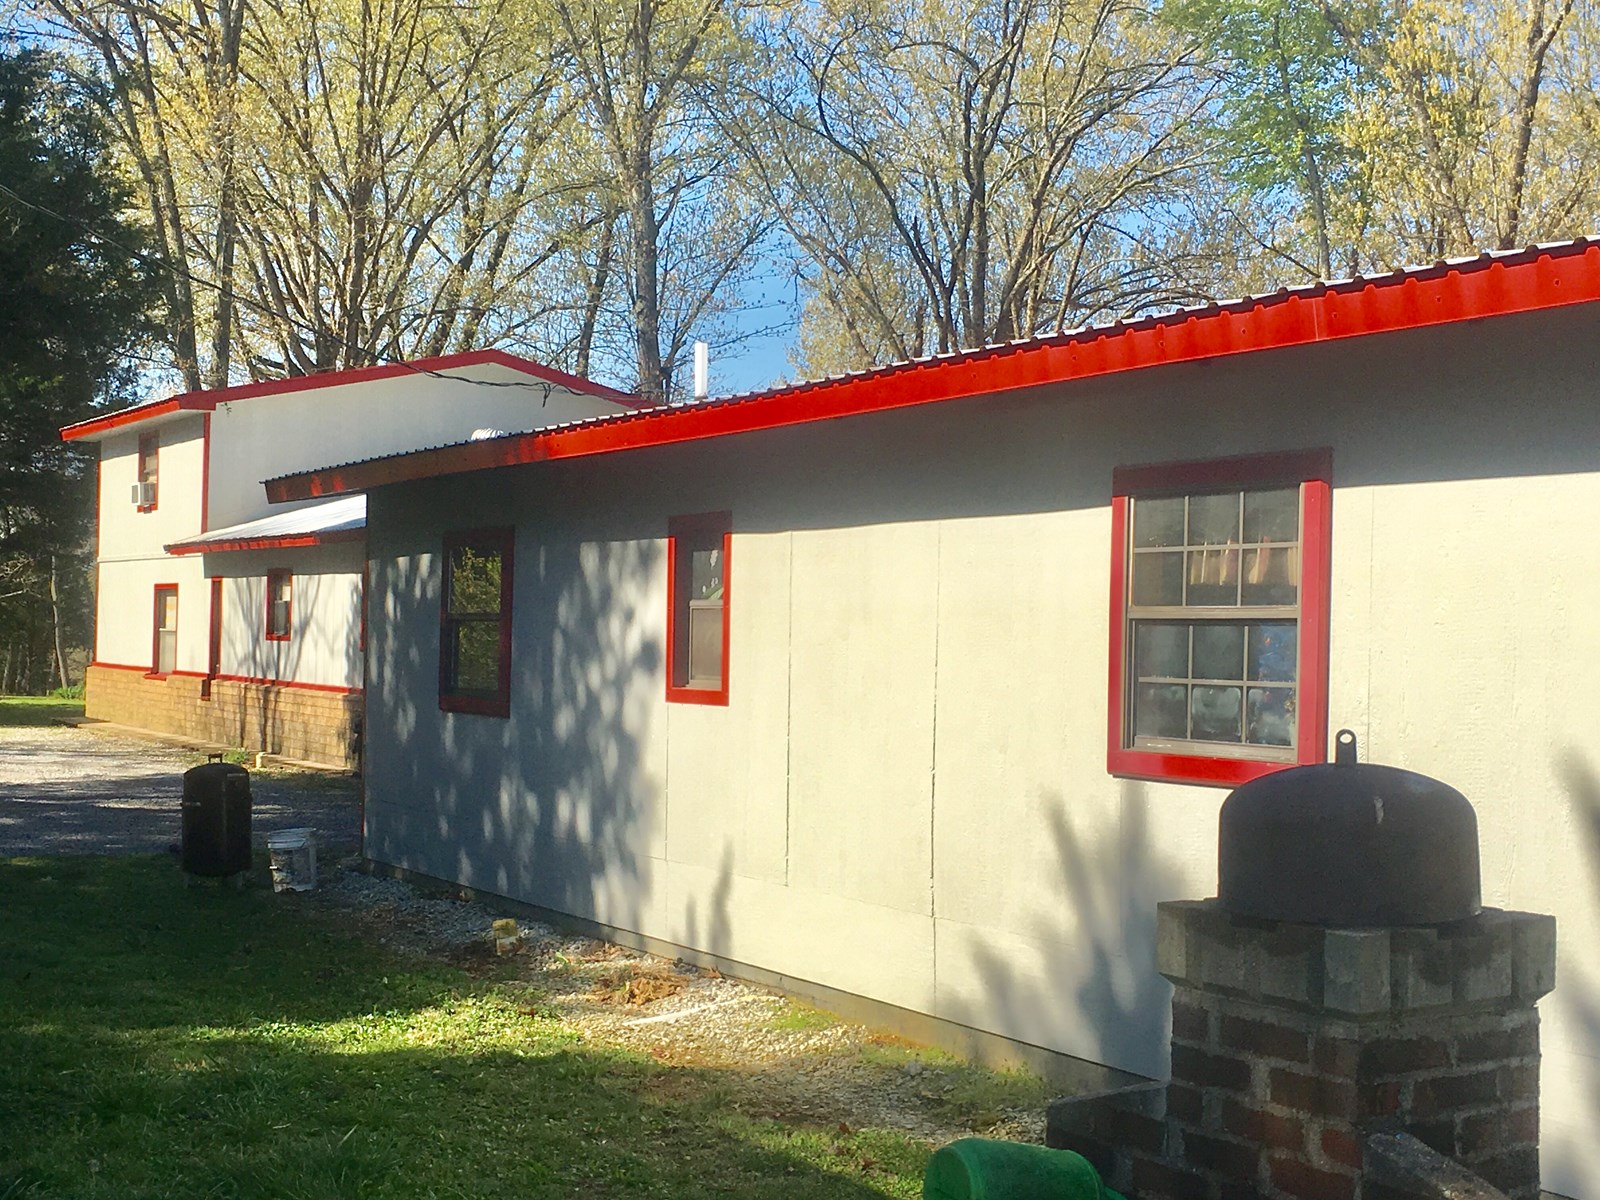 Country Home on 13 acres for sale north Arkansas, 4 BR 2 BA